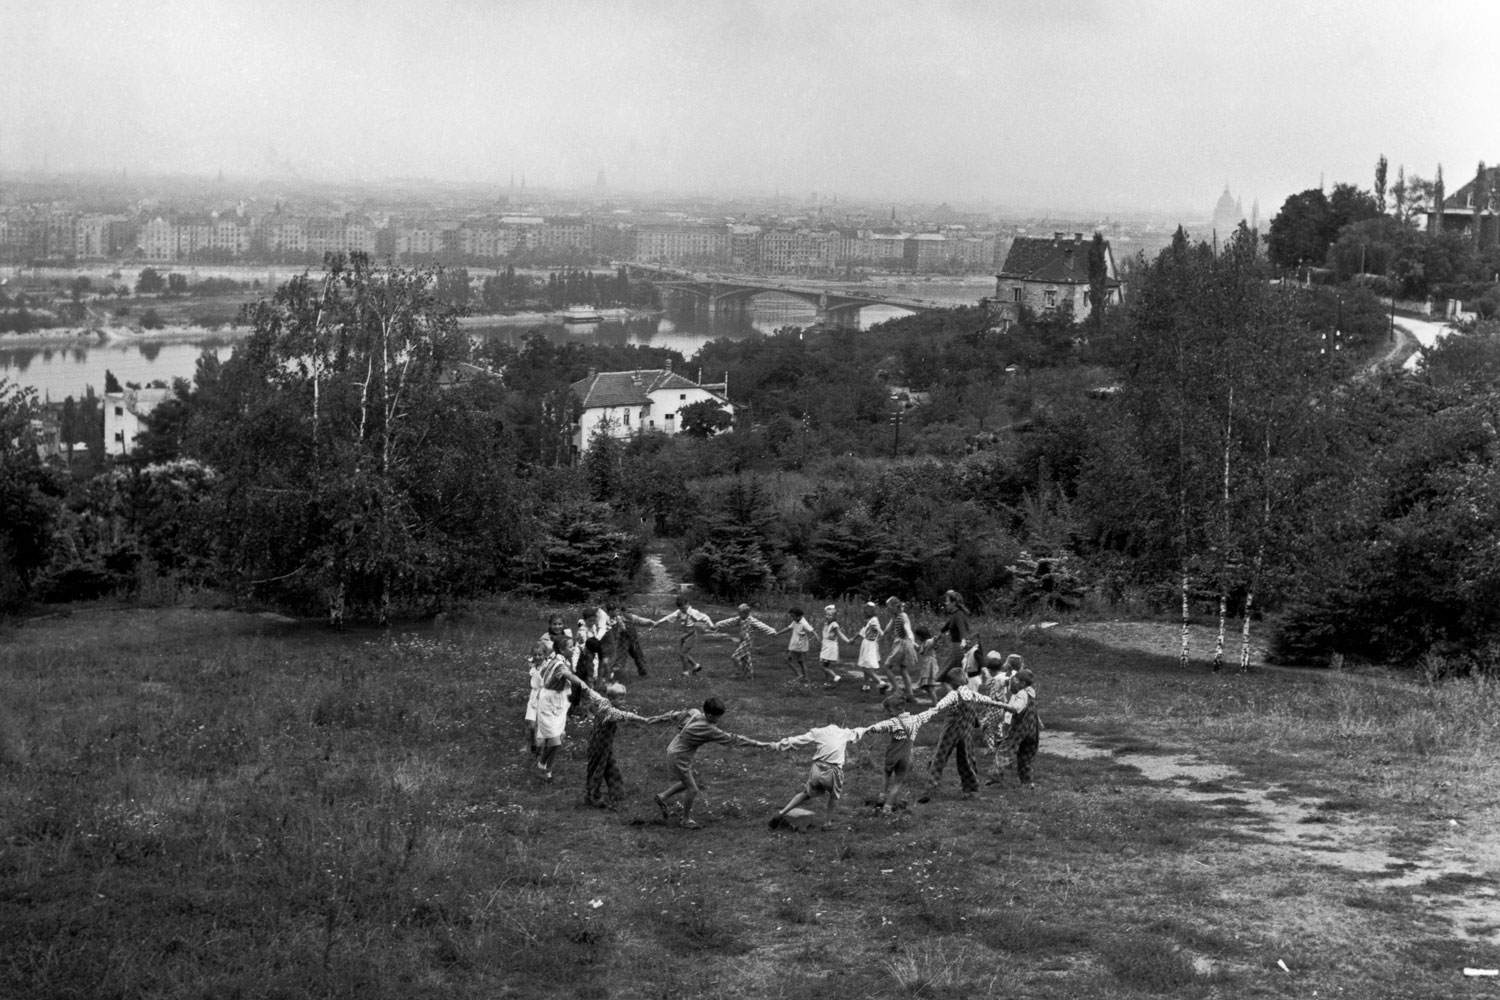 Children playing in a suburban park. Behind lies the Danube with the newly built Margareten Bridge. The theme of Ring a Ring o' Roses, often contrasting with a ruined landscape, is recurrent in Chim's work as well in his colleague Werner Bischof's post-World War II European work. Budapest, Hungary. 1948.